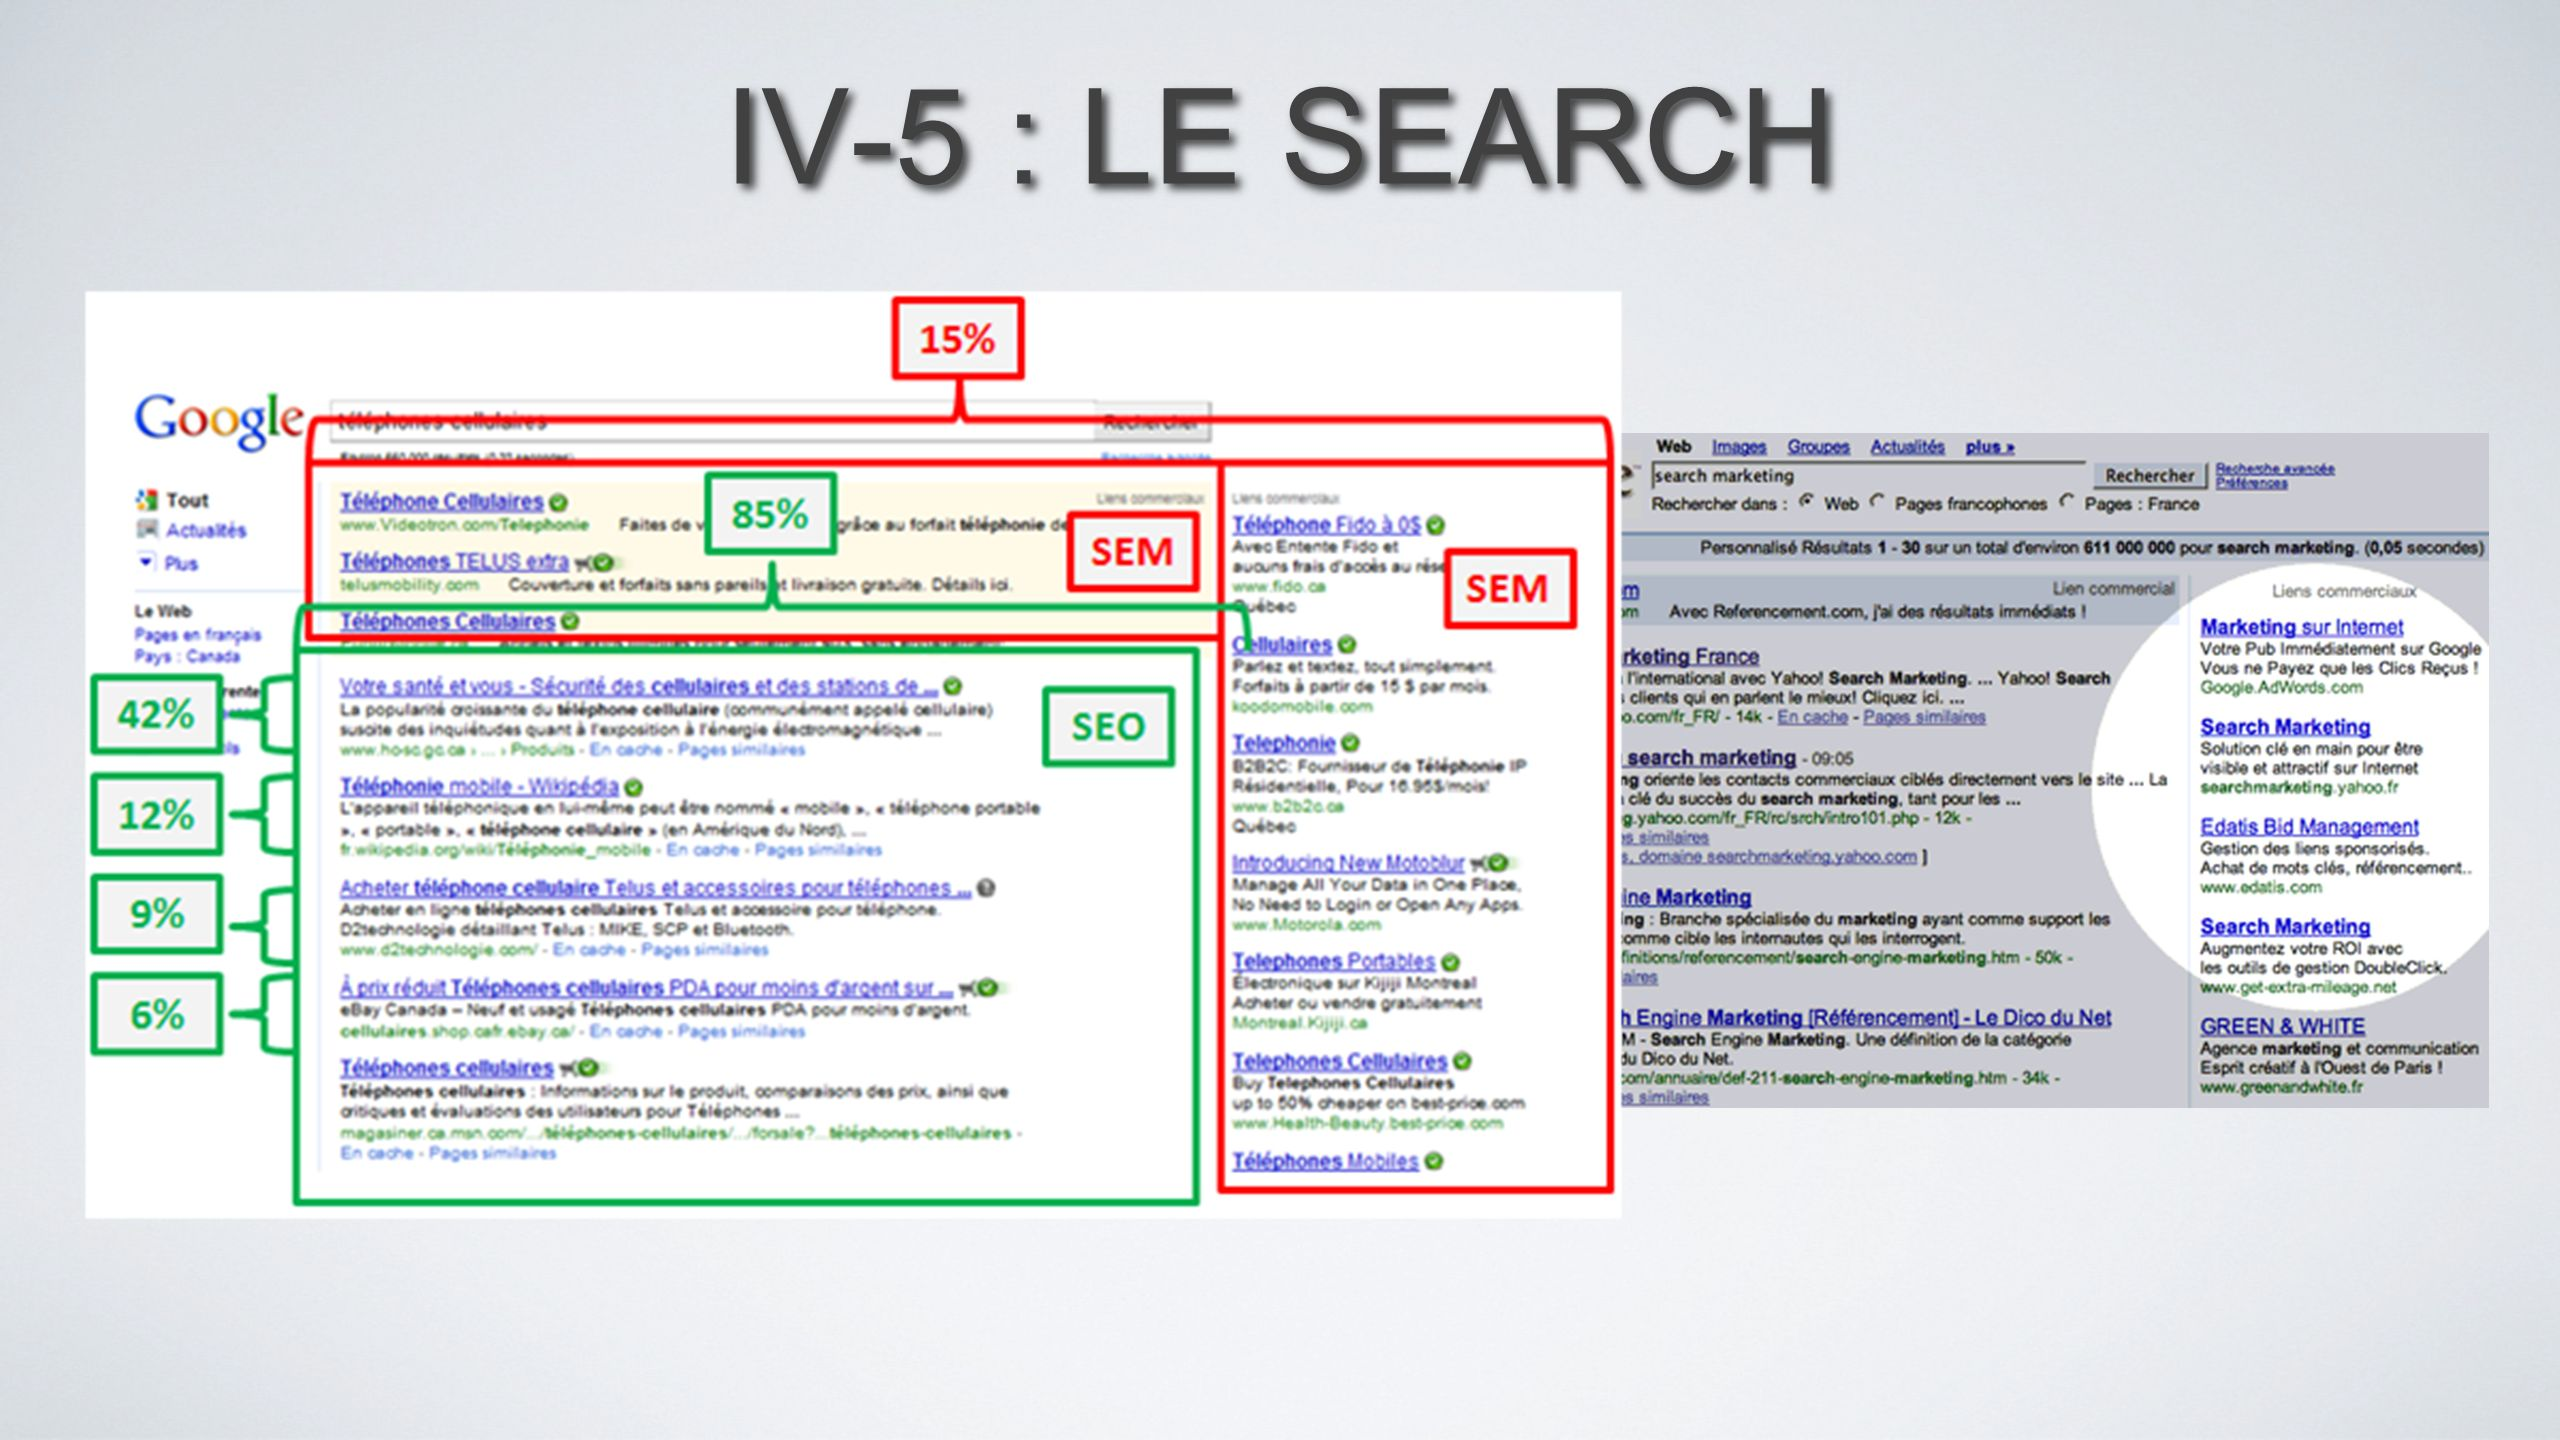 IV-5 : LE SEARCH